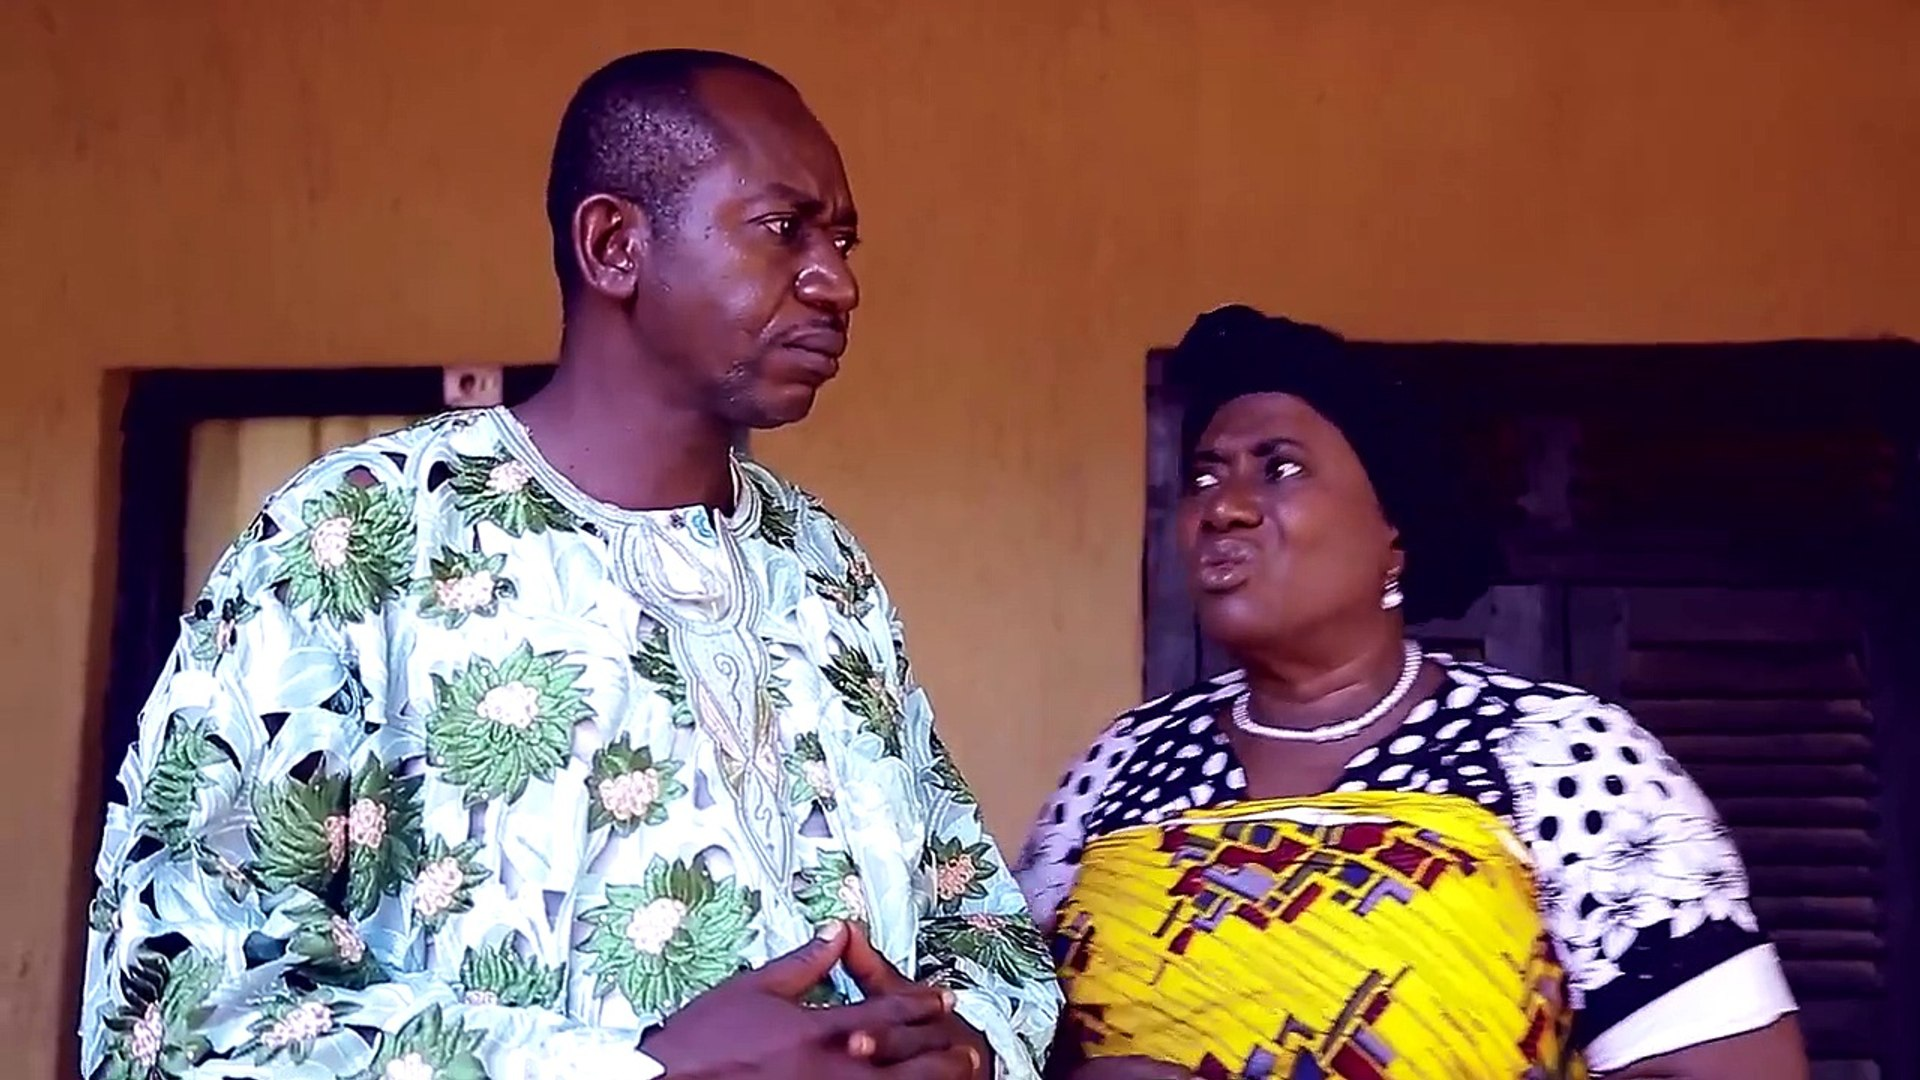 THE UNGREATFUL HEART   NEW NOLLYWOOD MOVIE